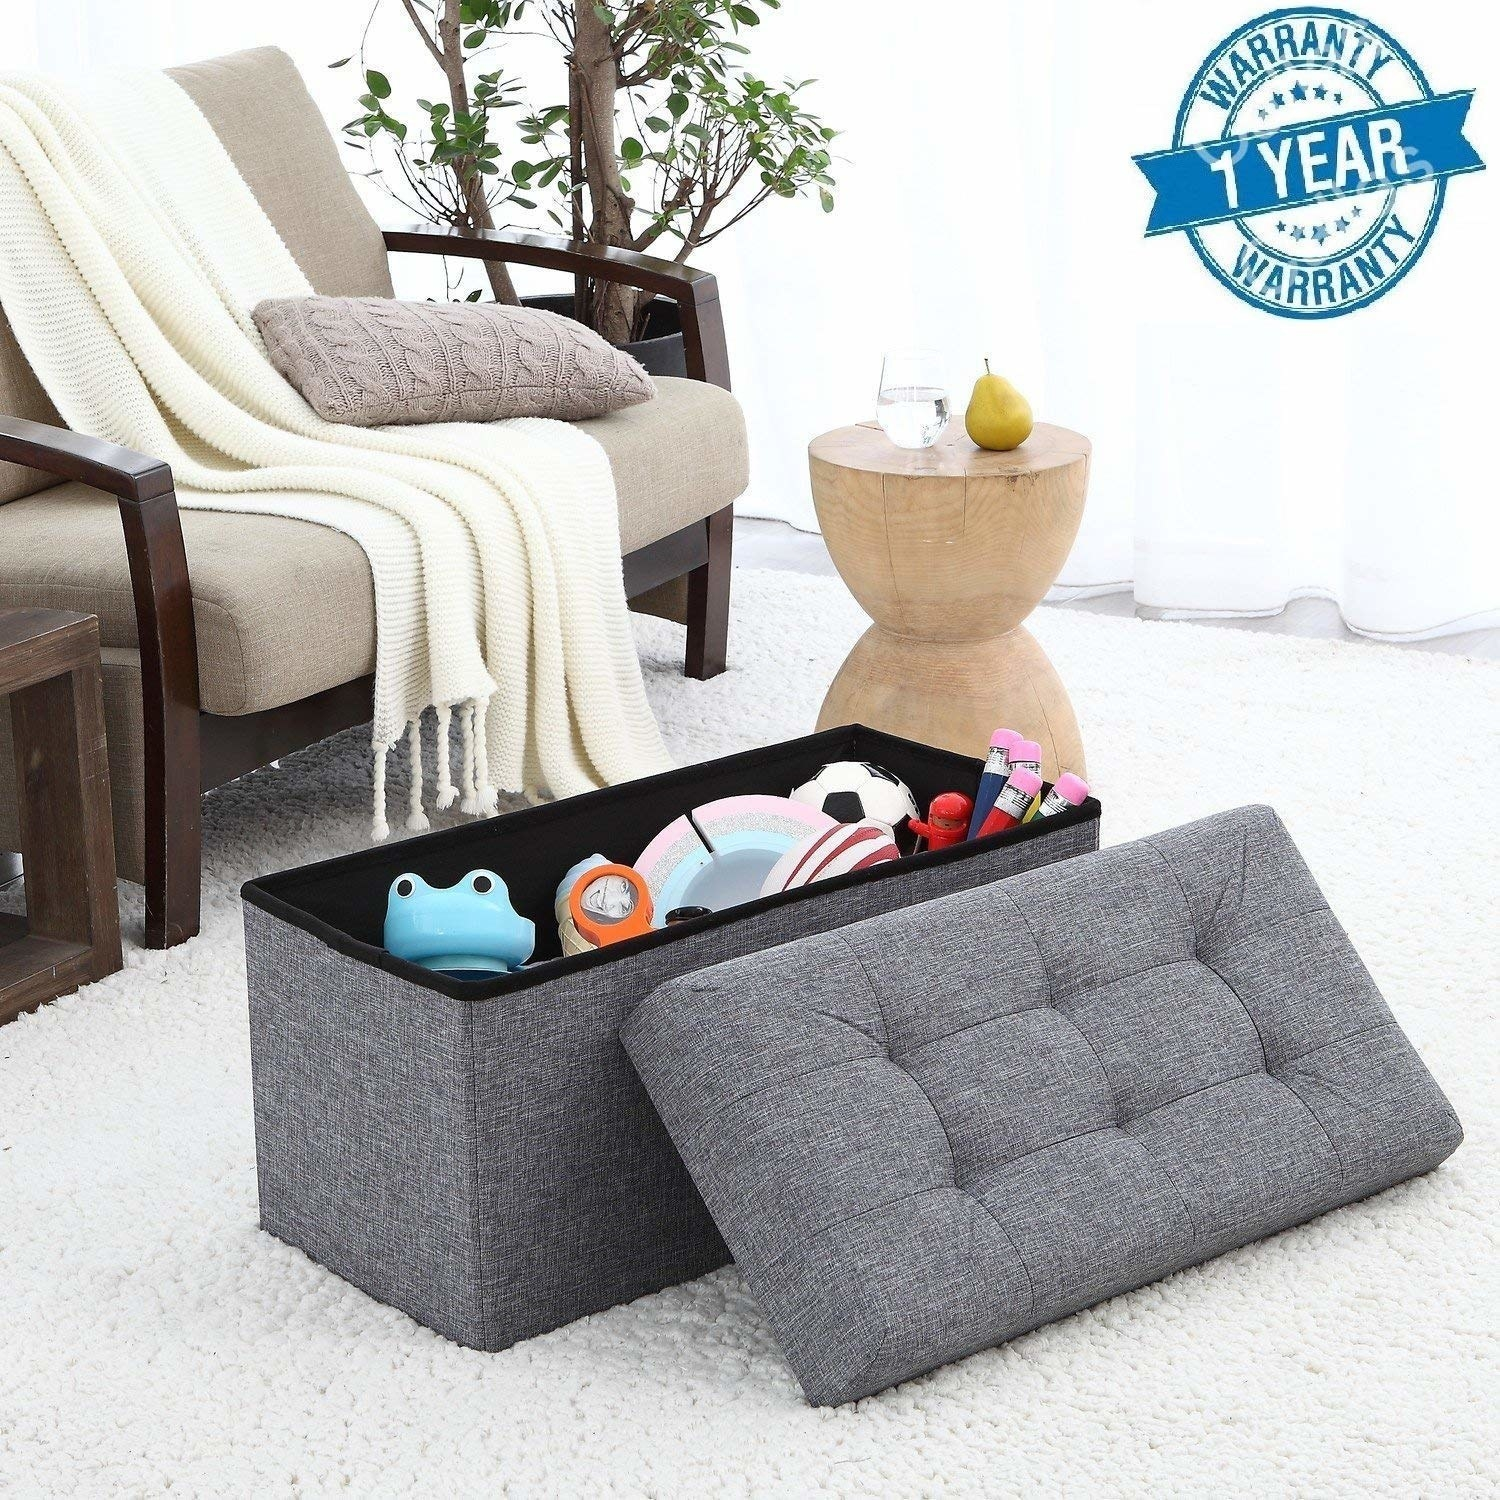 A grey storage ottoman on the floor with toys in it next to a sofa with a blanket on it